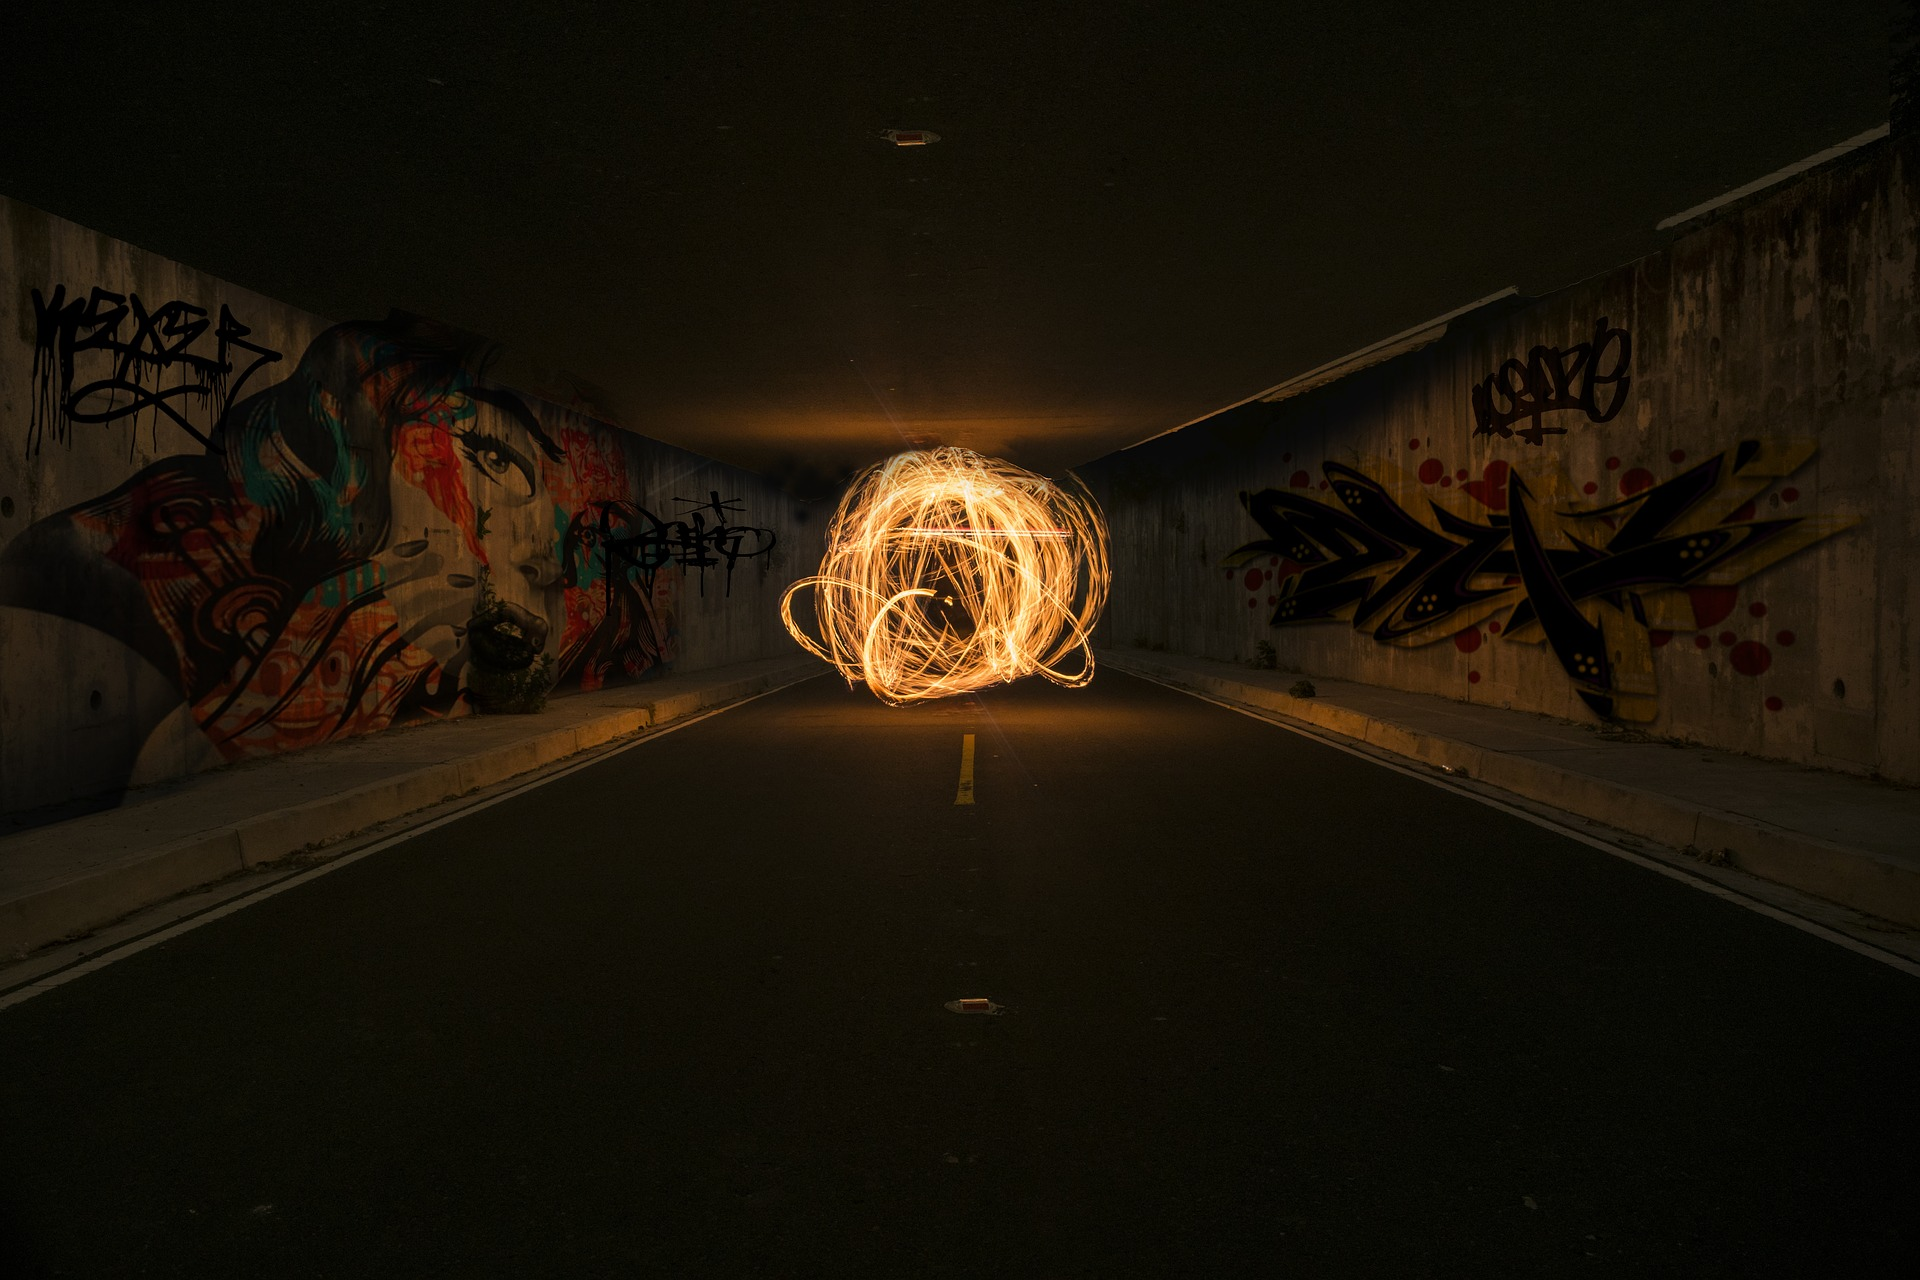 Photo of a ball of light in a dark tunnel whose walls are covered in graffiti